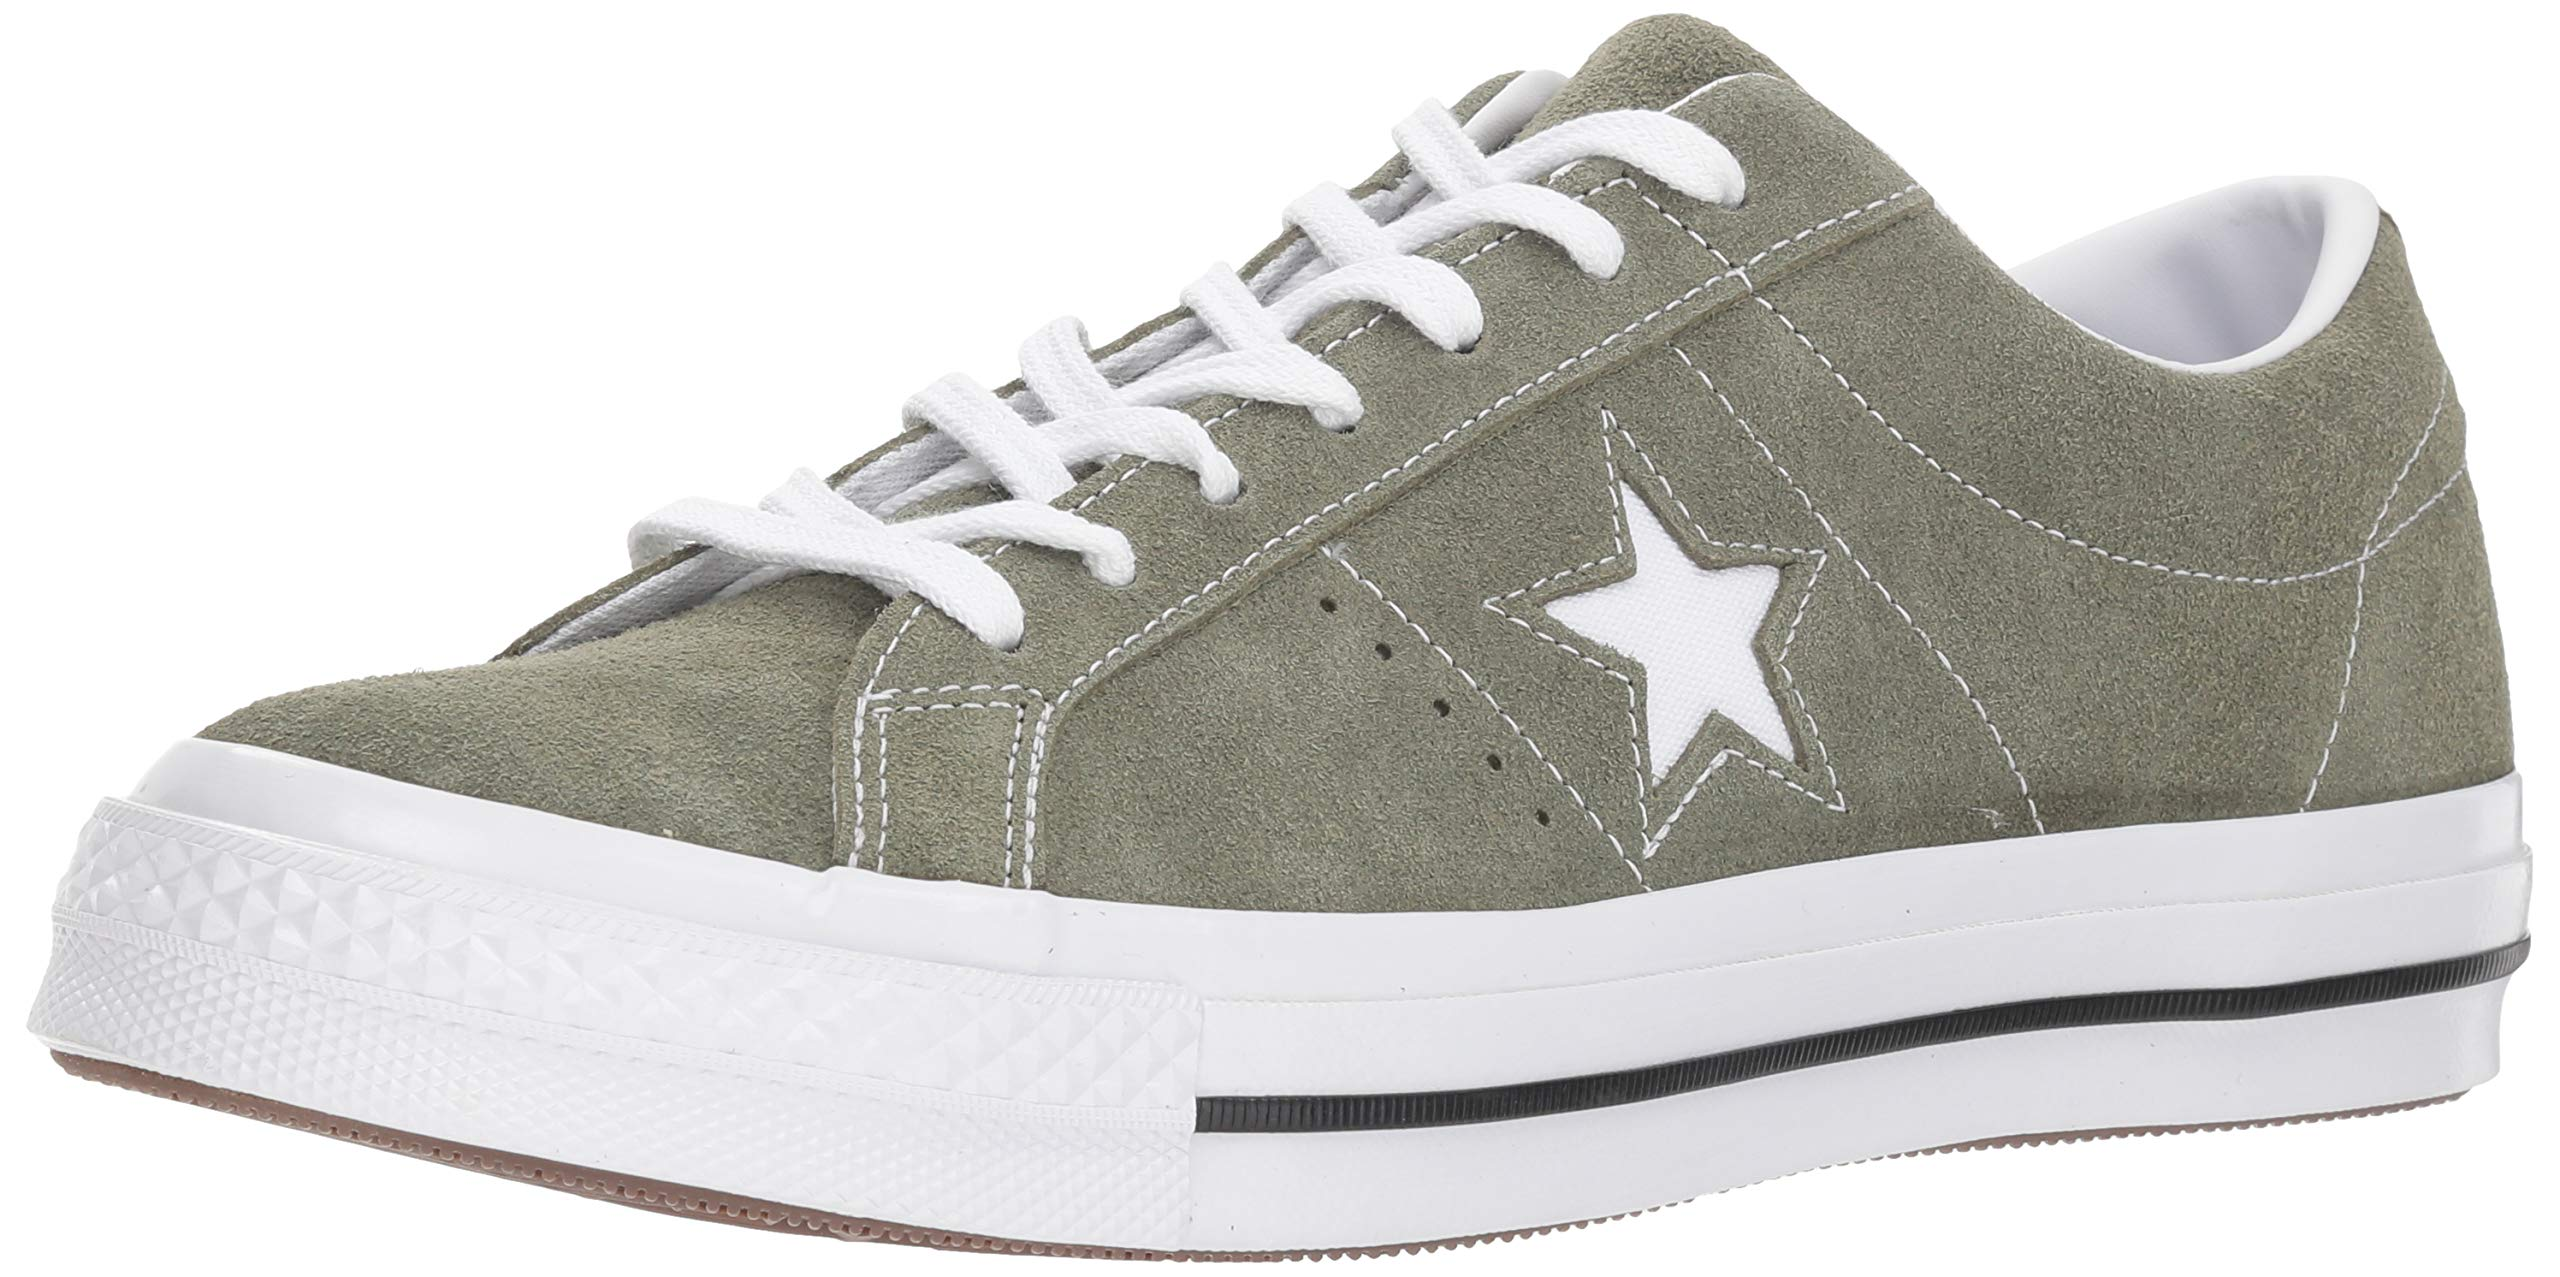 Converse Mens One Star Ox Suede Low Top Casual Shoes Green 11 Medium (D)